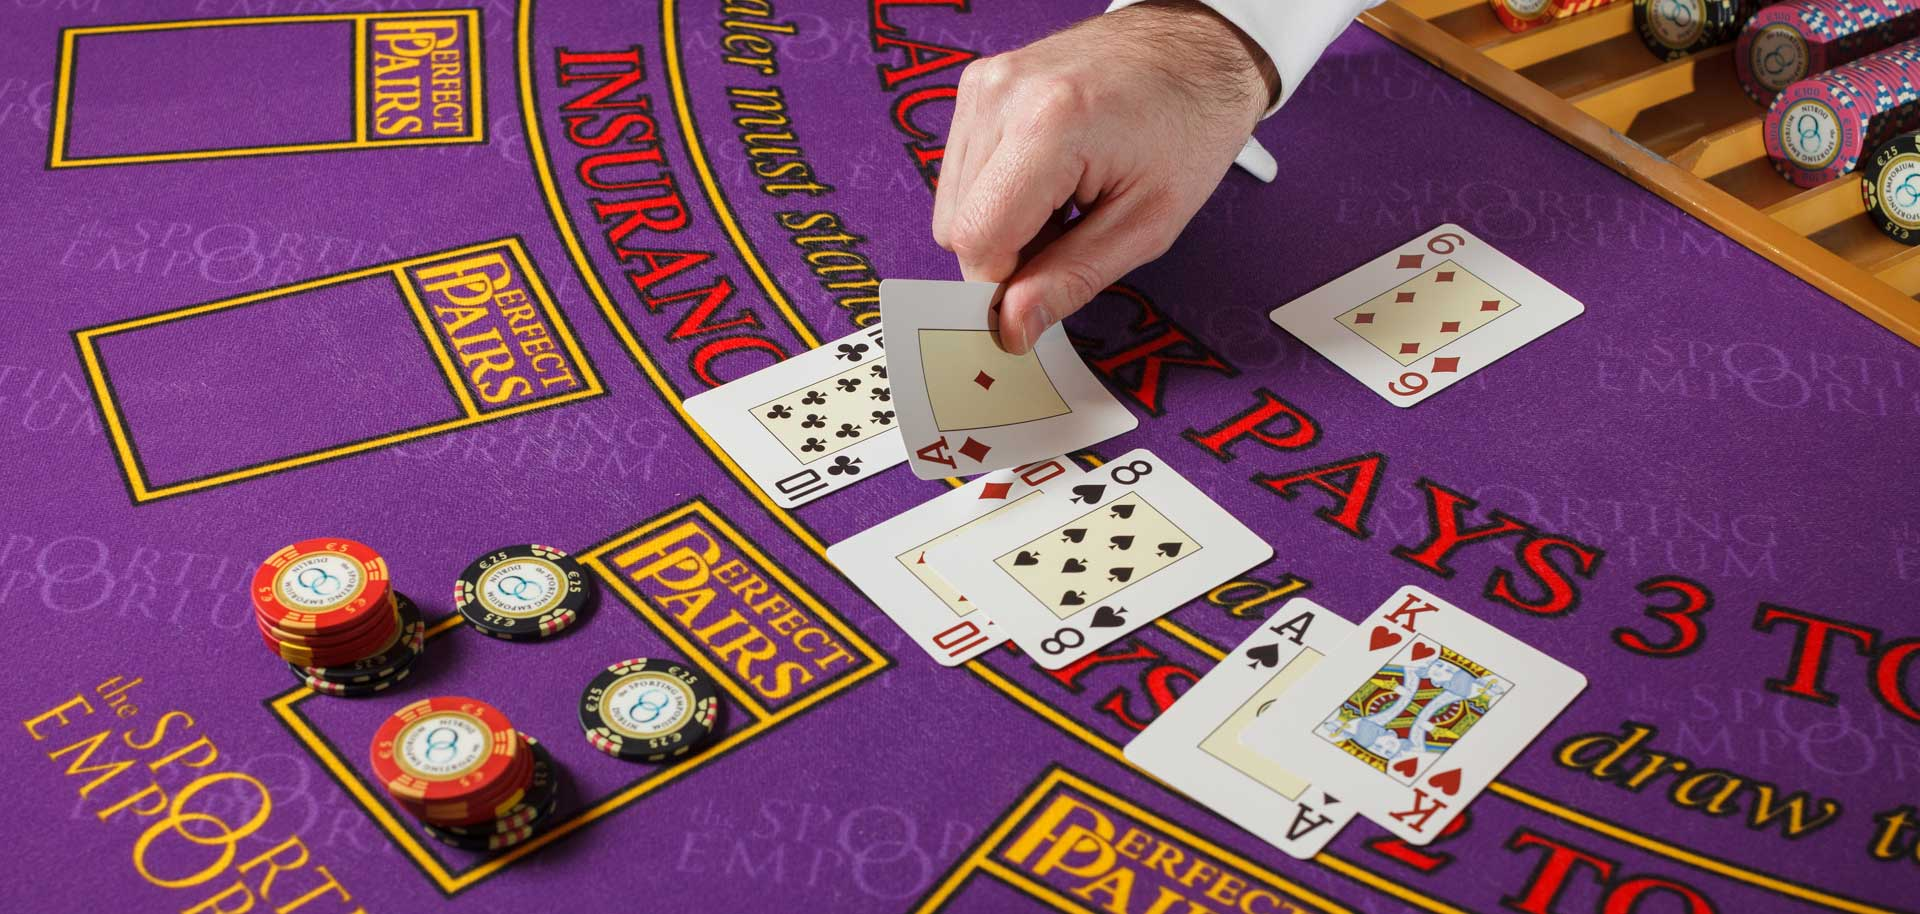 Where do newcomers to blackjack should start?